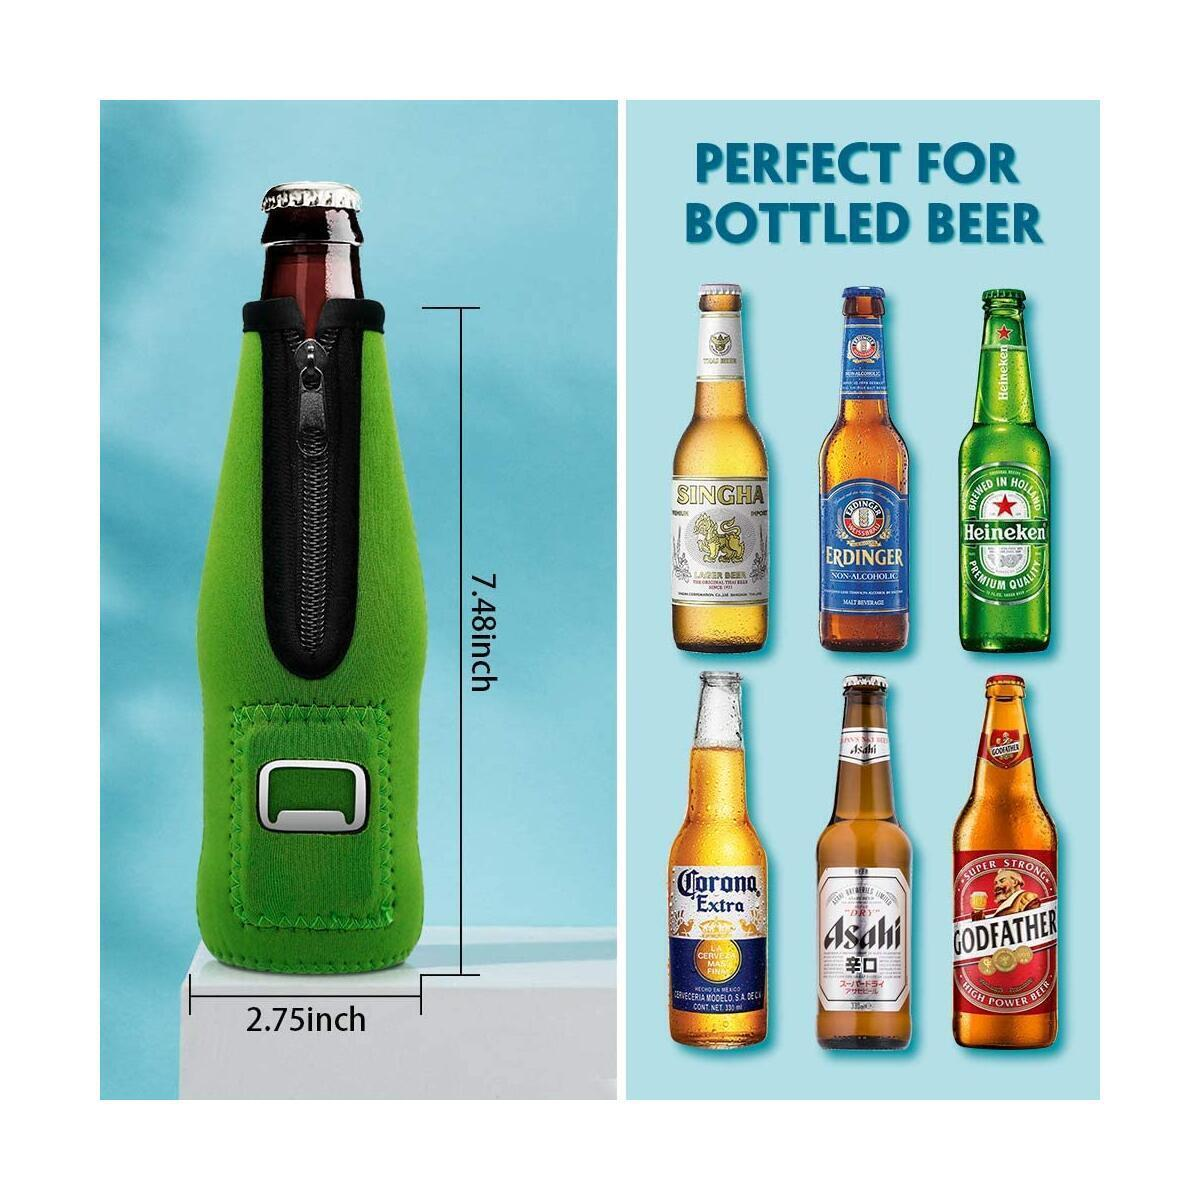 Aymaloy Bottle Keeper for Beer (Pack of 4), Beer Bottle Coozies With Zipper Insulated Beer Bottle Holders to Keep Cold Beer Cooler Neoprene Bottle Coozie